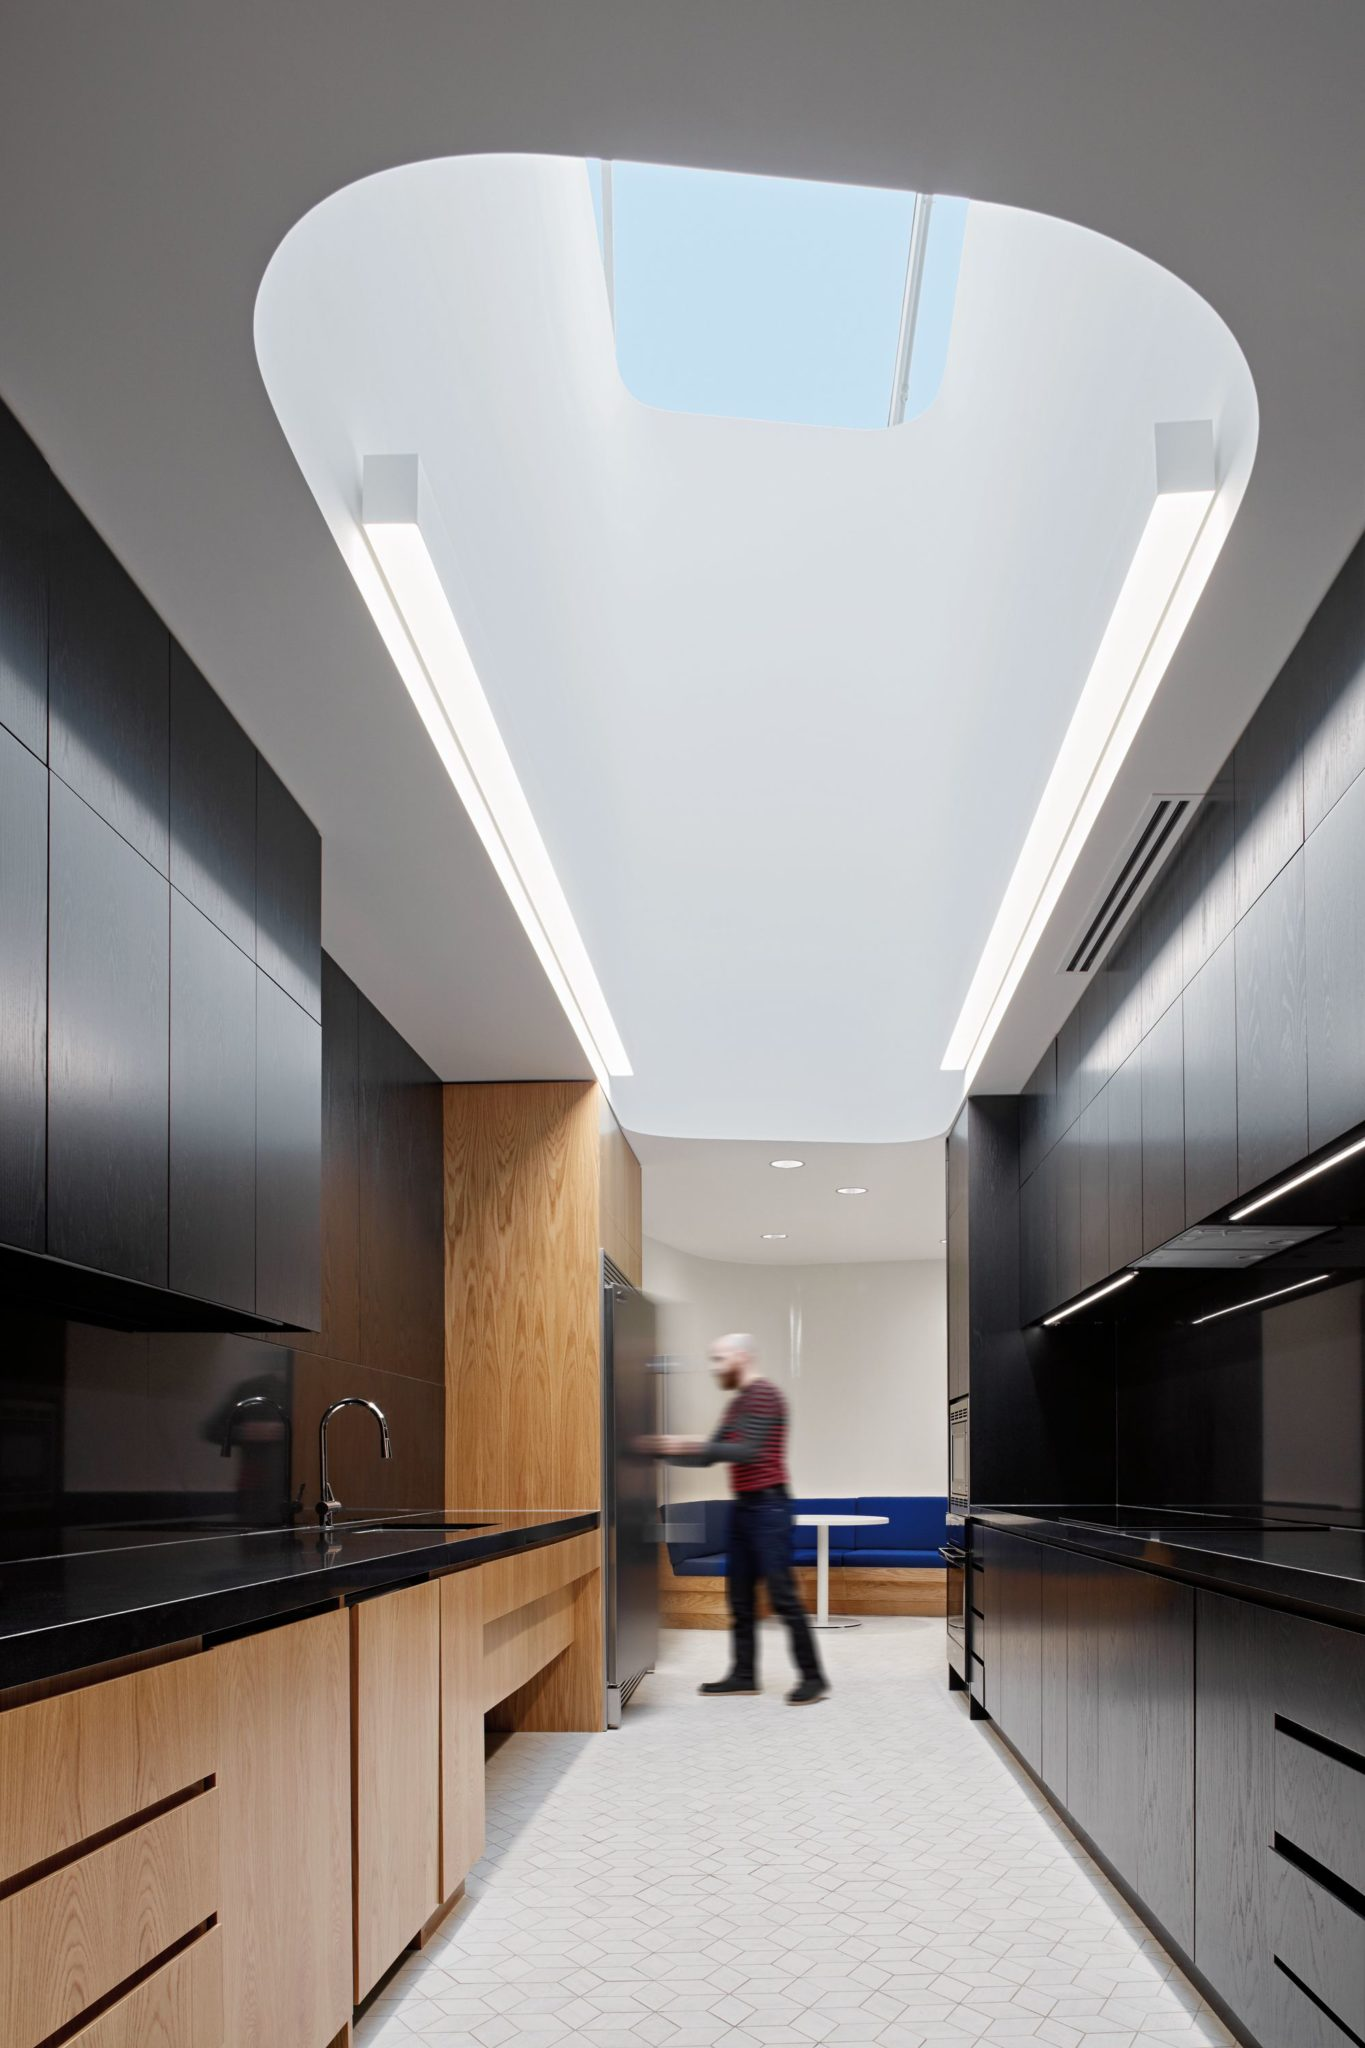 Office-kitchen-with-ceiling-inspired-by-the-ice-rink